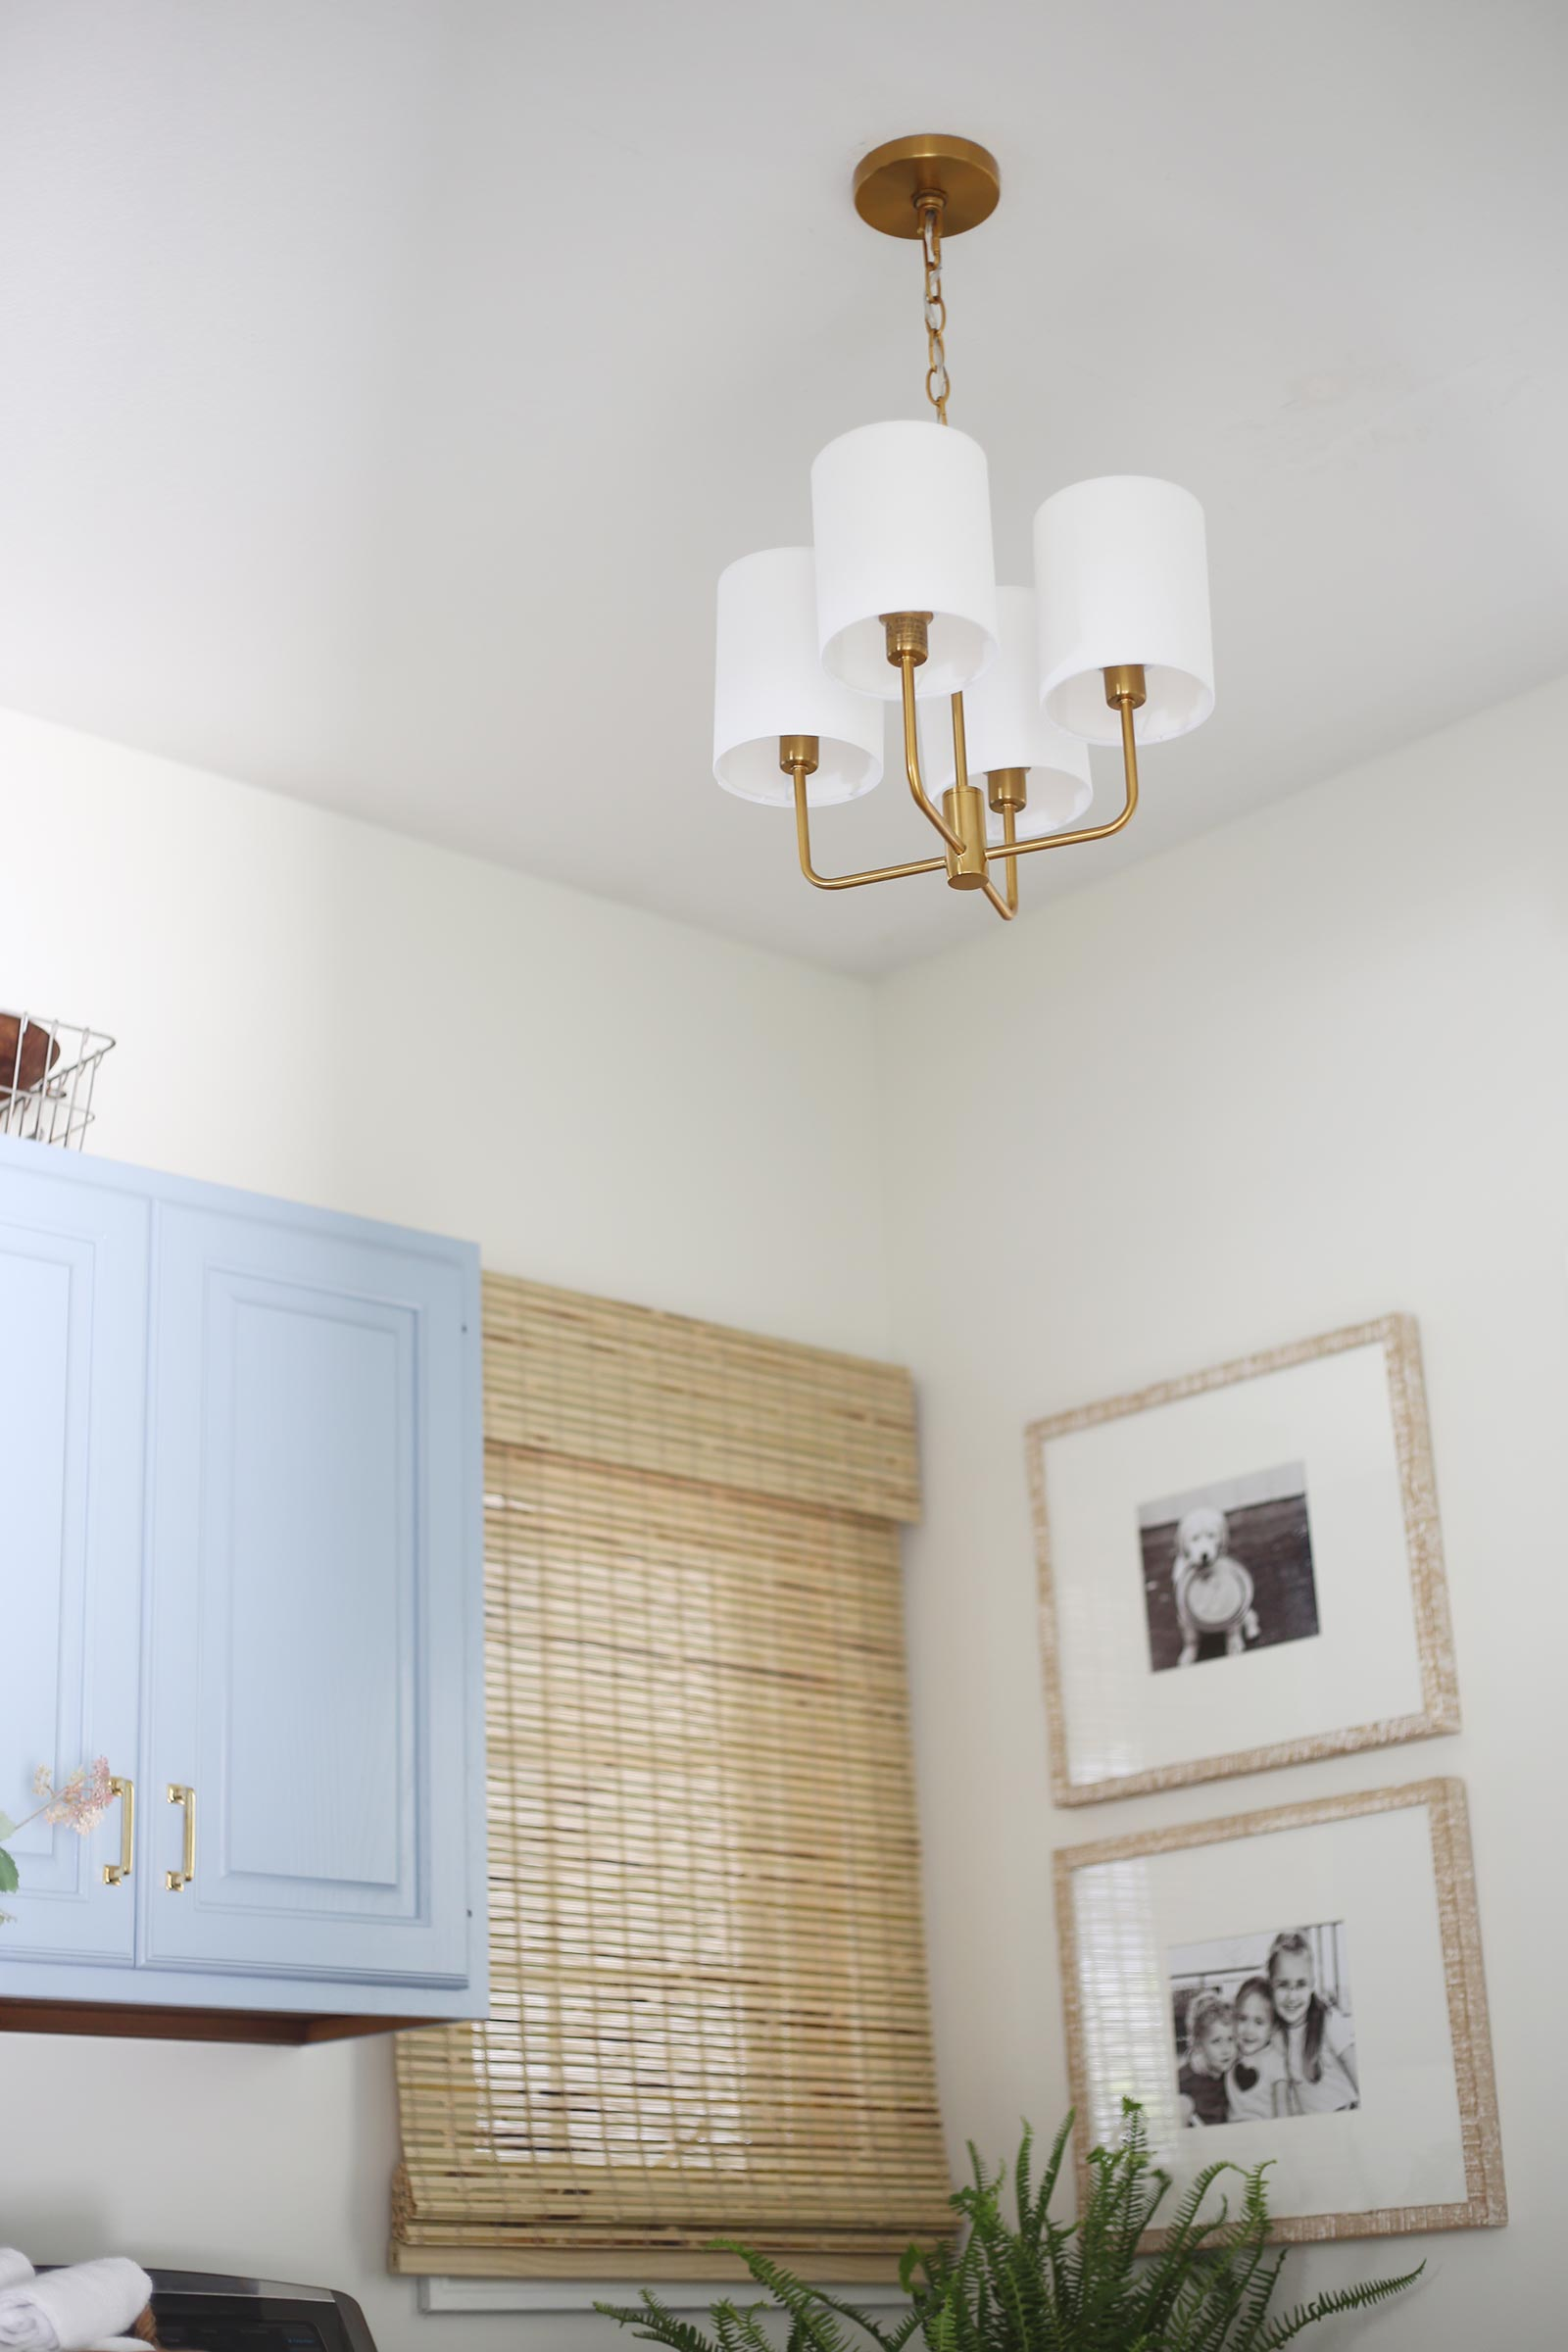 modern brass light fixture in laundry room